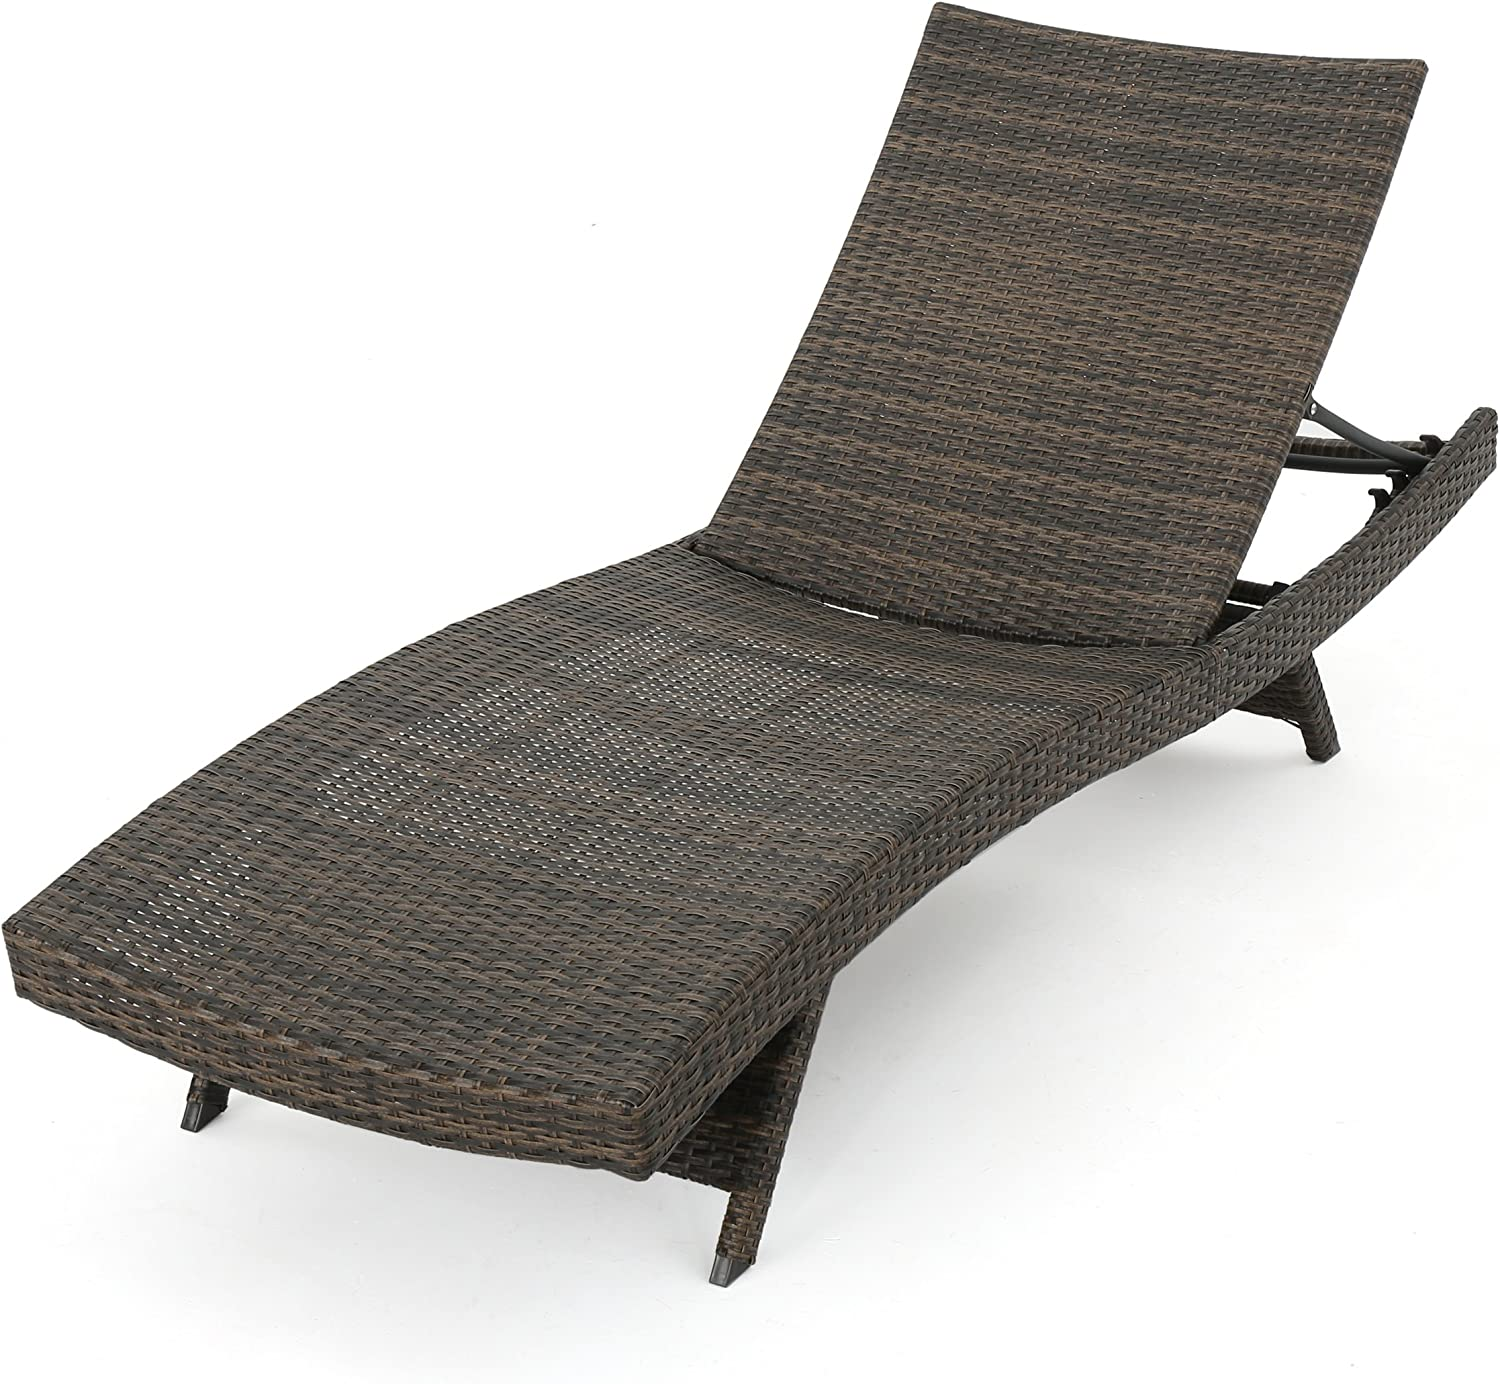 Thelma Outdoor Wicker Chaise Lounge Chair, Mix Mocha